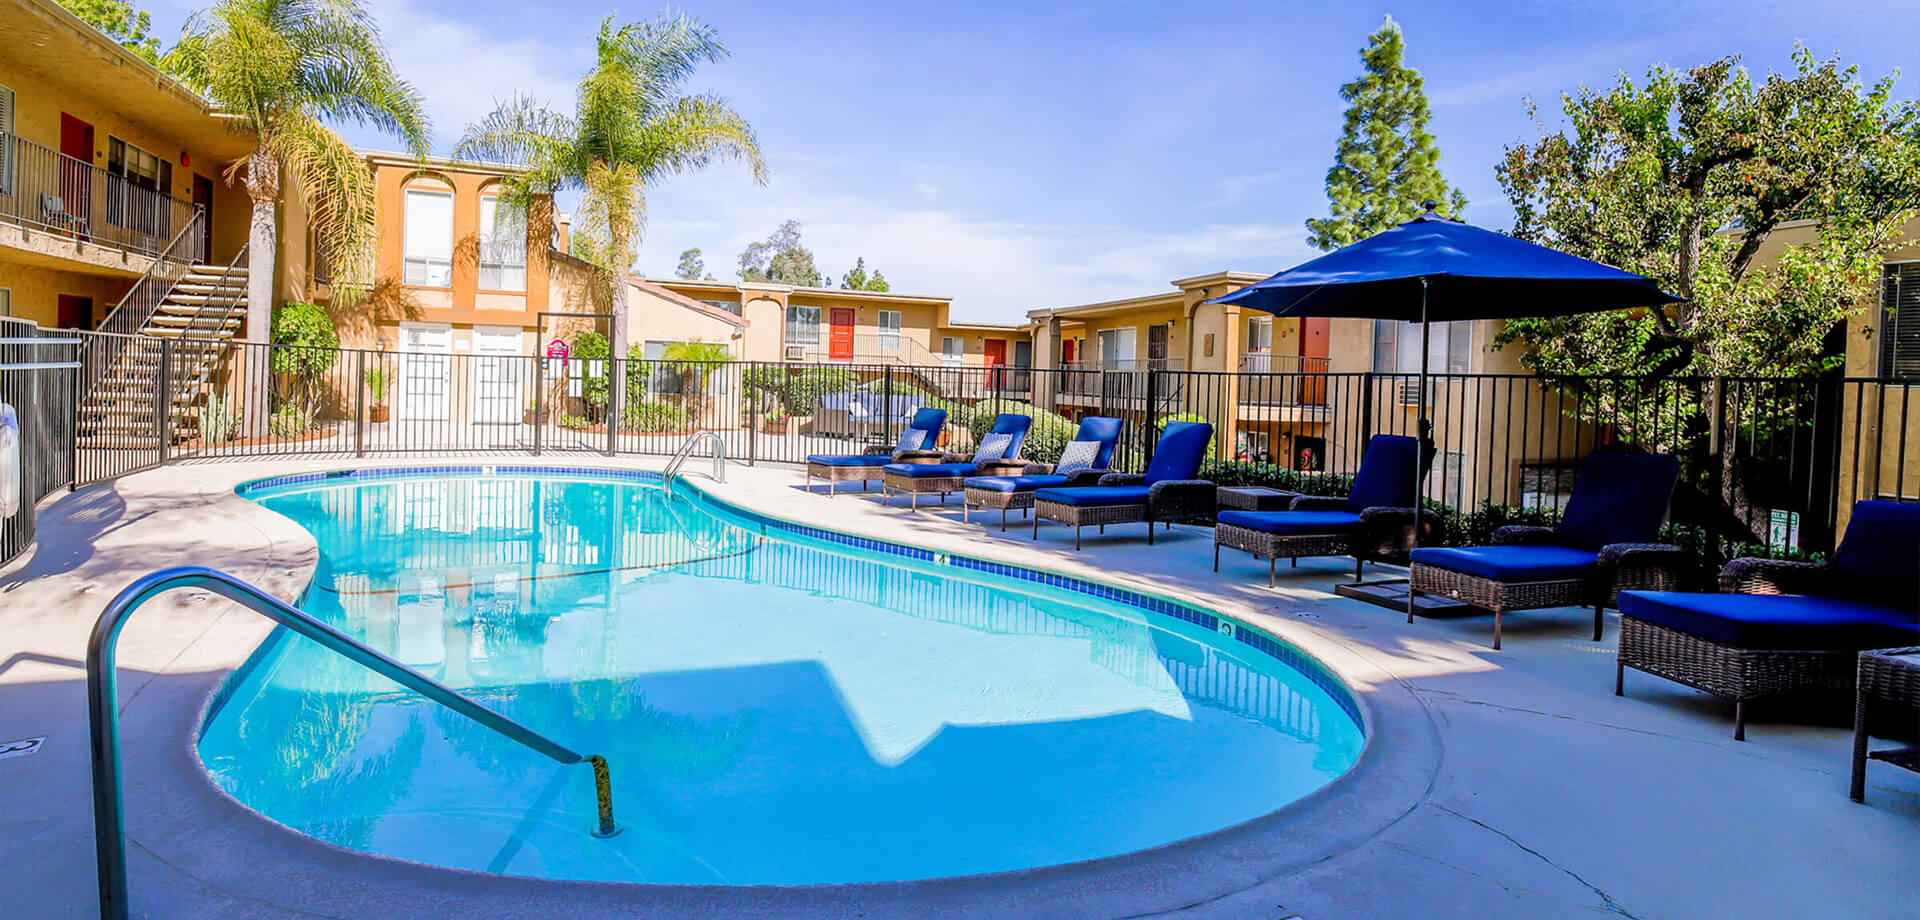 Parkview Apartments - Apartments in Poway, CA